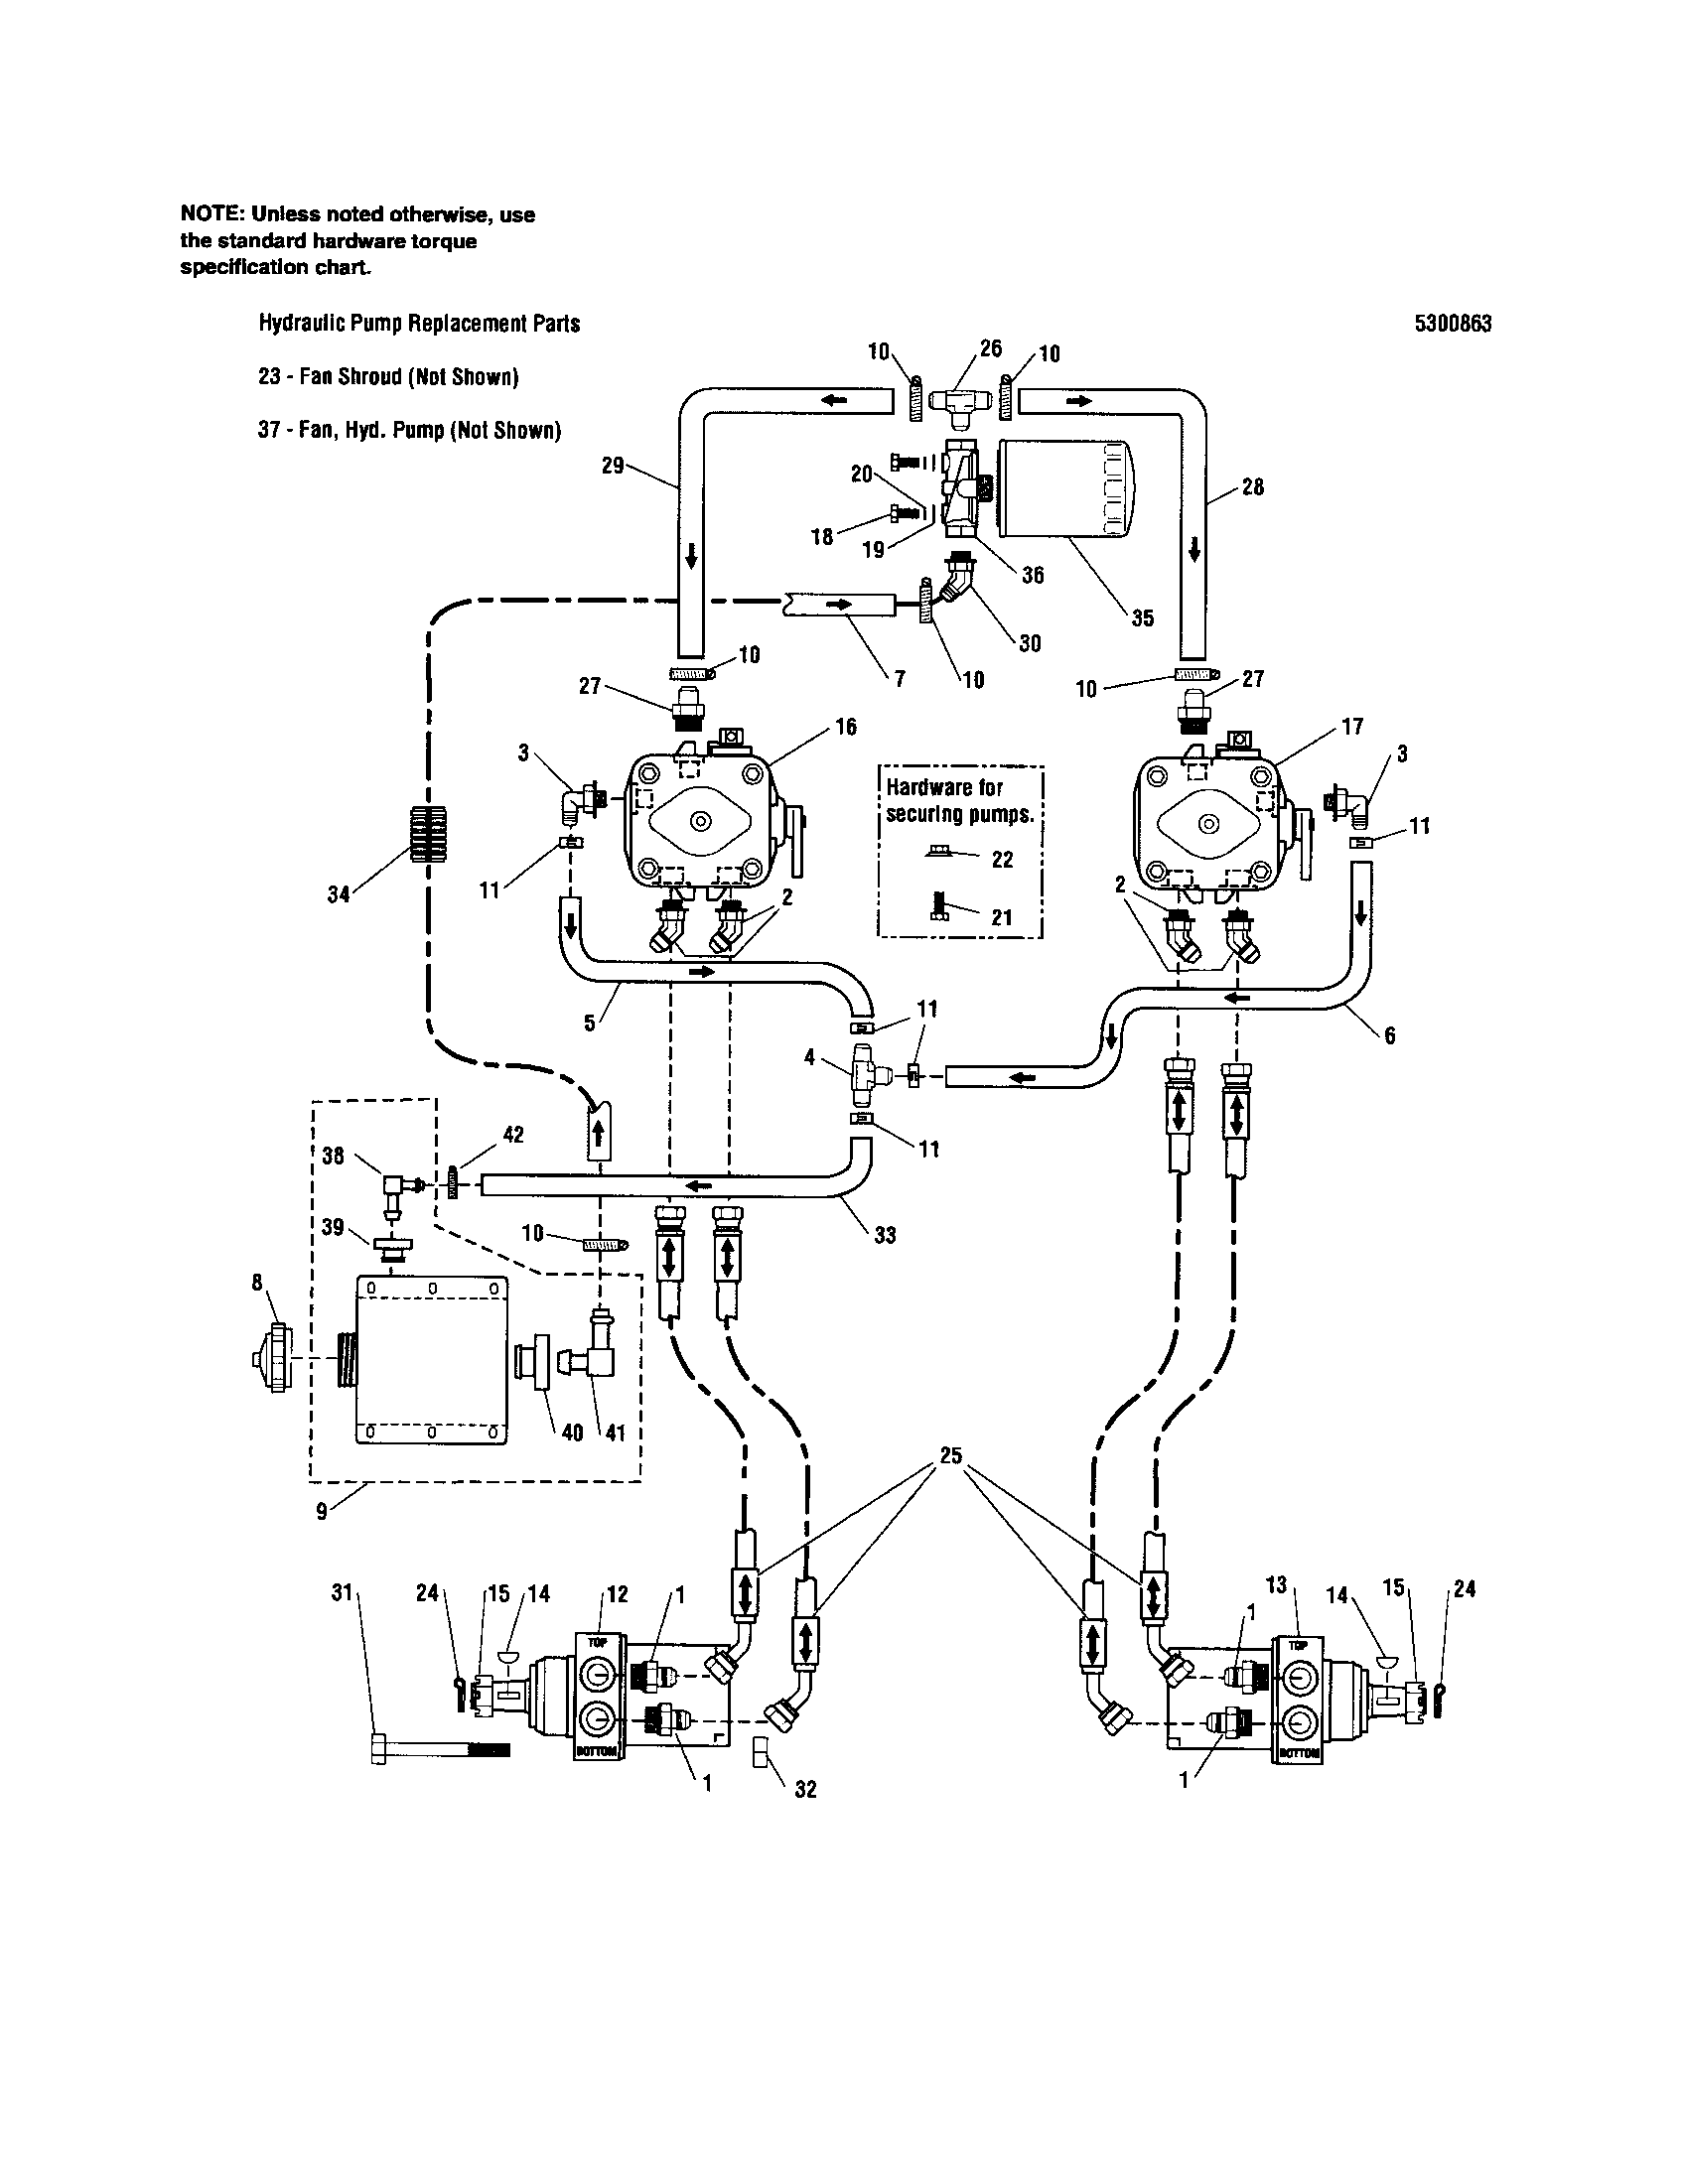 Zero Turn Mower Drawing At Free For Personal Use Ferris Seat Switch Wiring Diagram 1696x2200 Snapper Riding Parts Model 5900664 Sears